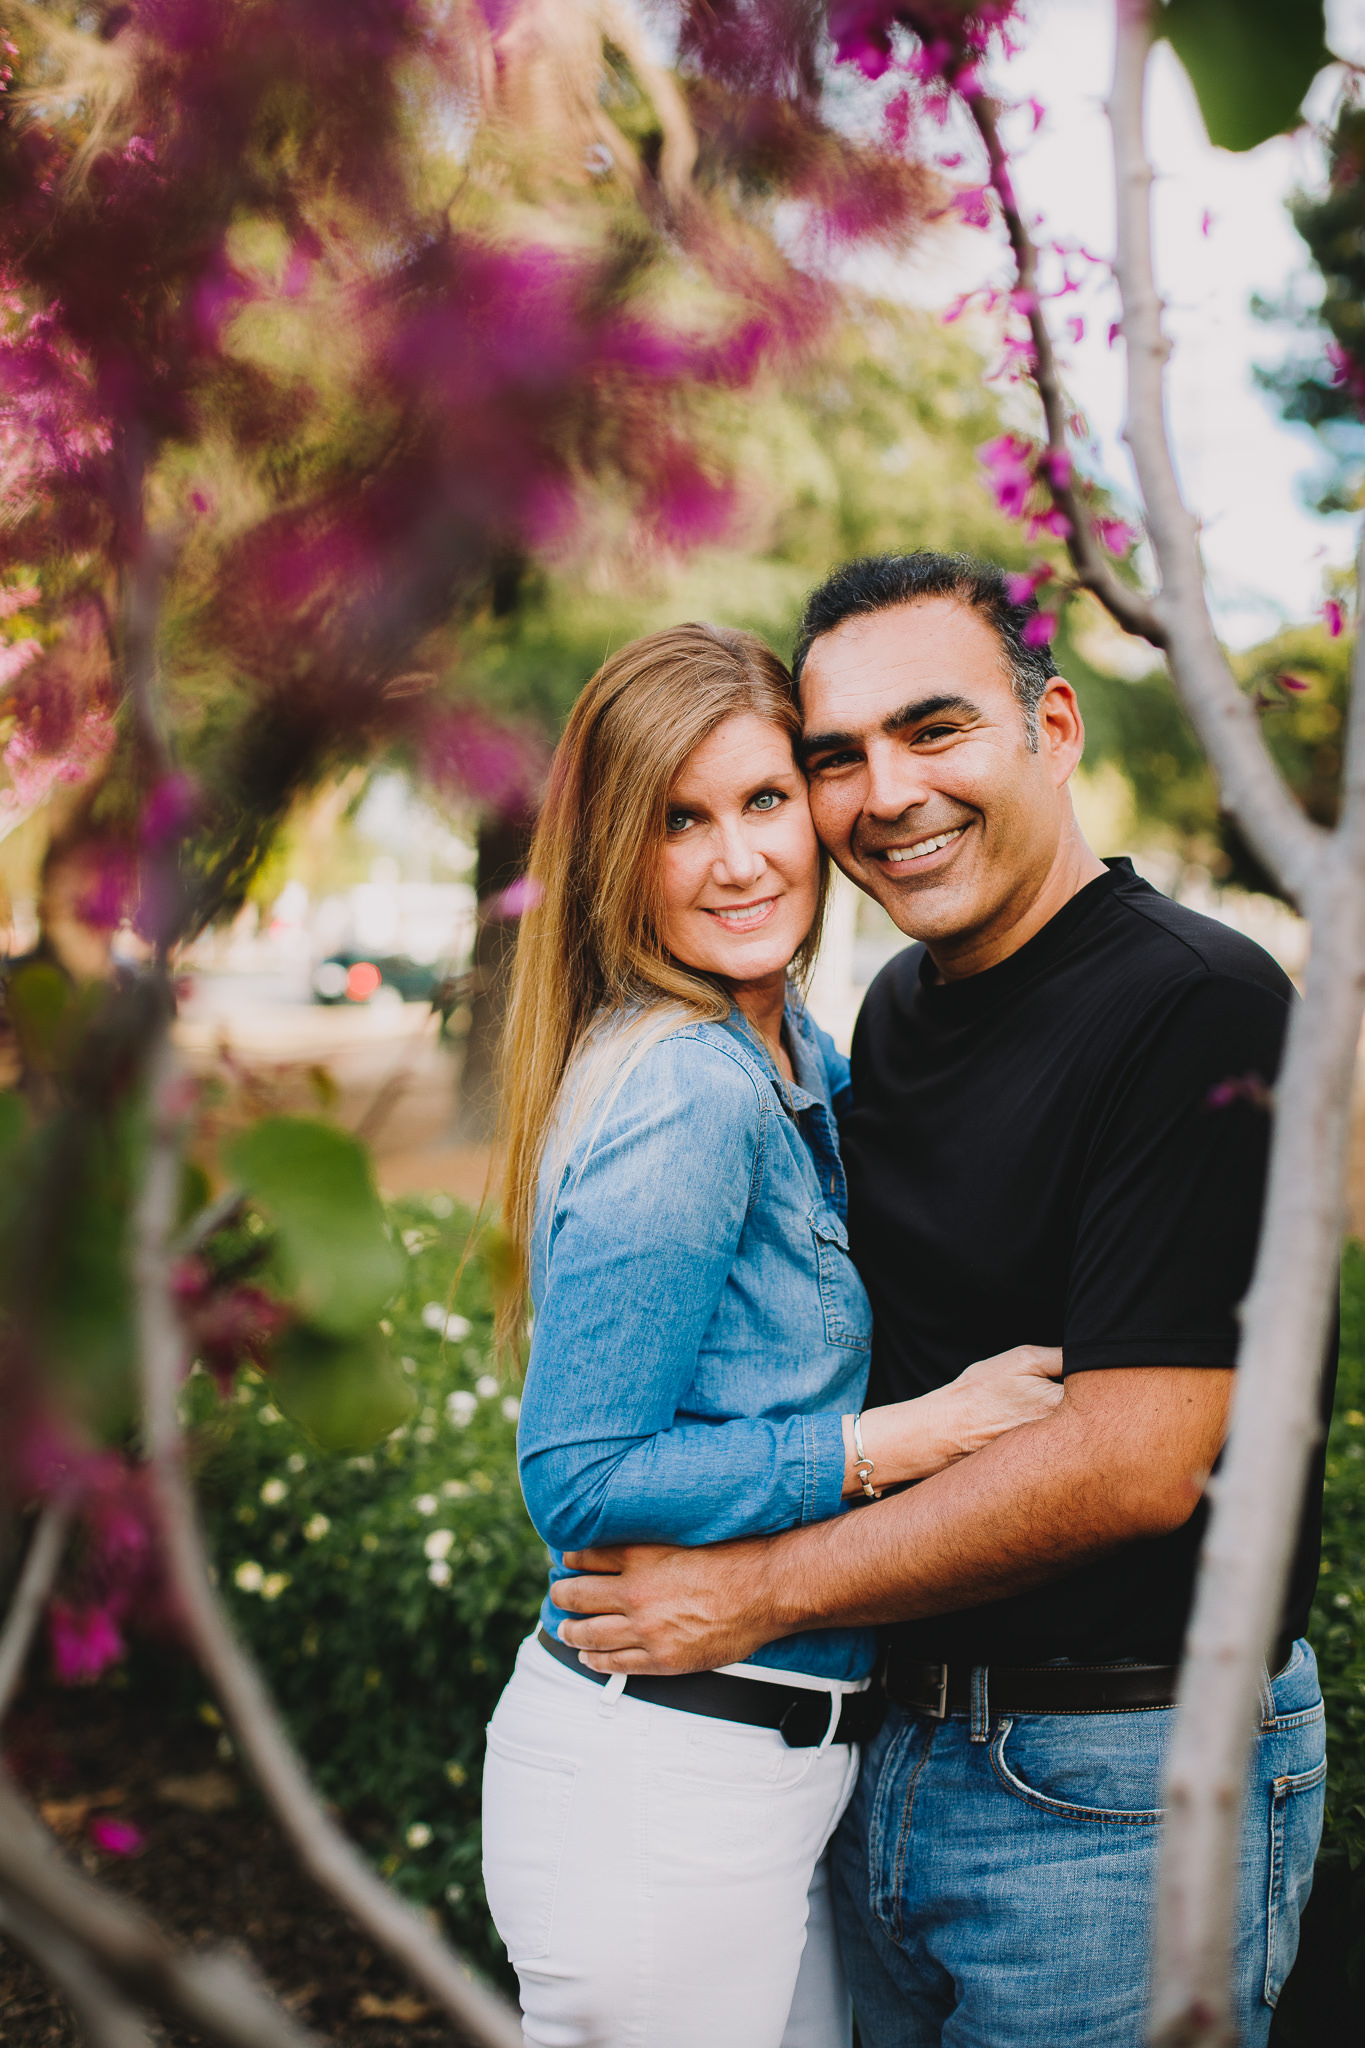 Archer Inspired Photography Los Angeles Orange County Long Beach Wedding Engagement Session Affordable Best Rated Lifestyle Documentary Photographer Robin and Ivan-21.jpg